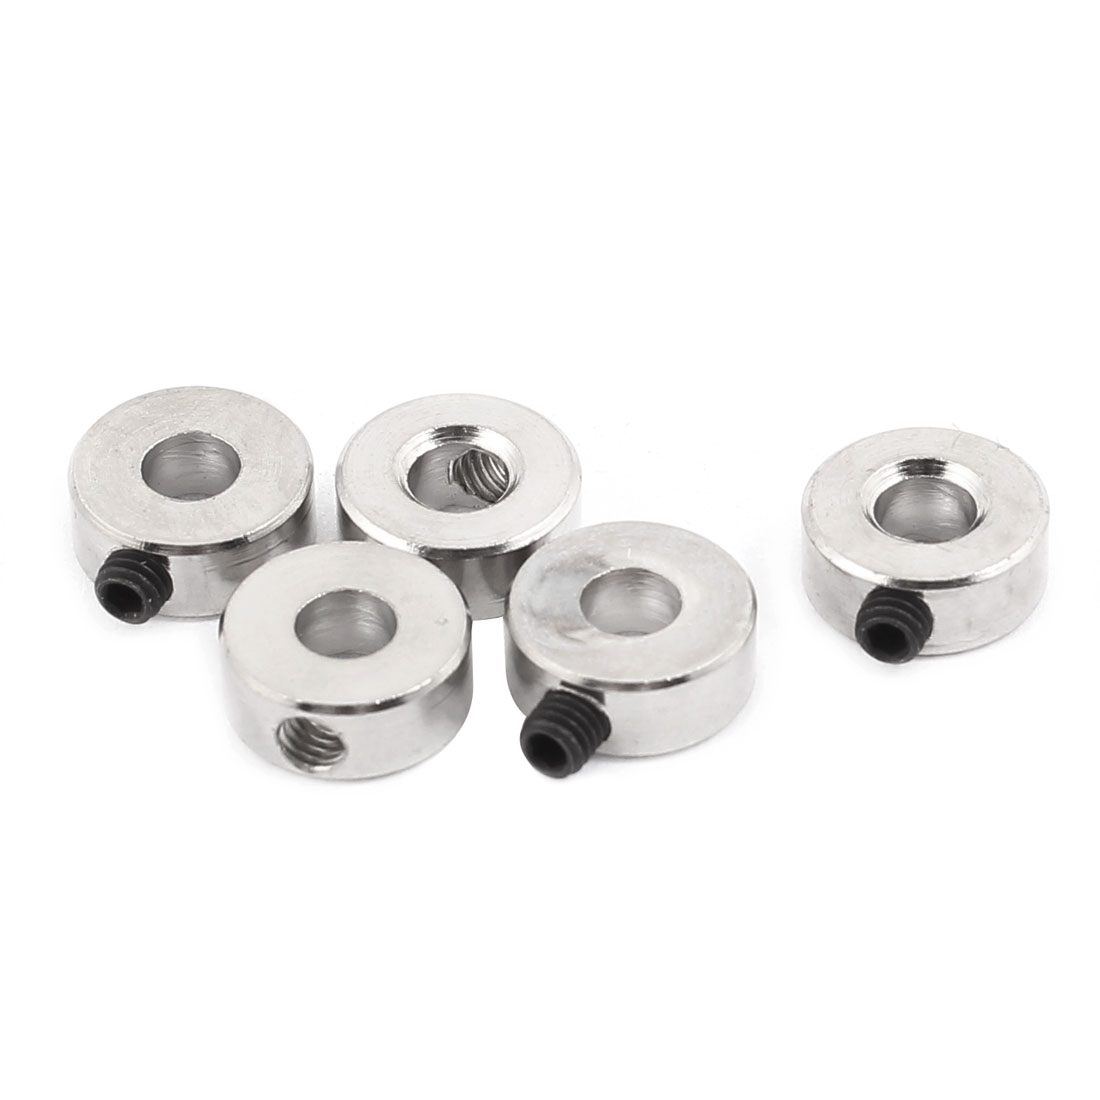 5 Pcs RC Airplane Landing Gear Wheel Stoppers 4.1mm Inner Dia 4.2x10mm w Screw